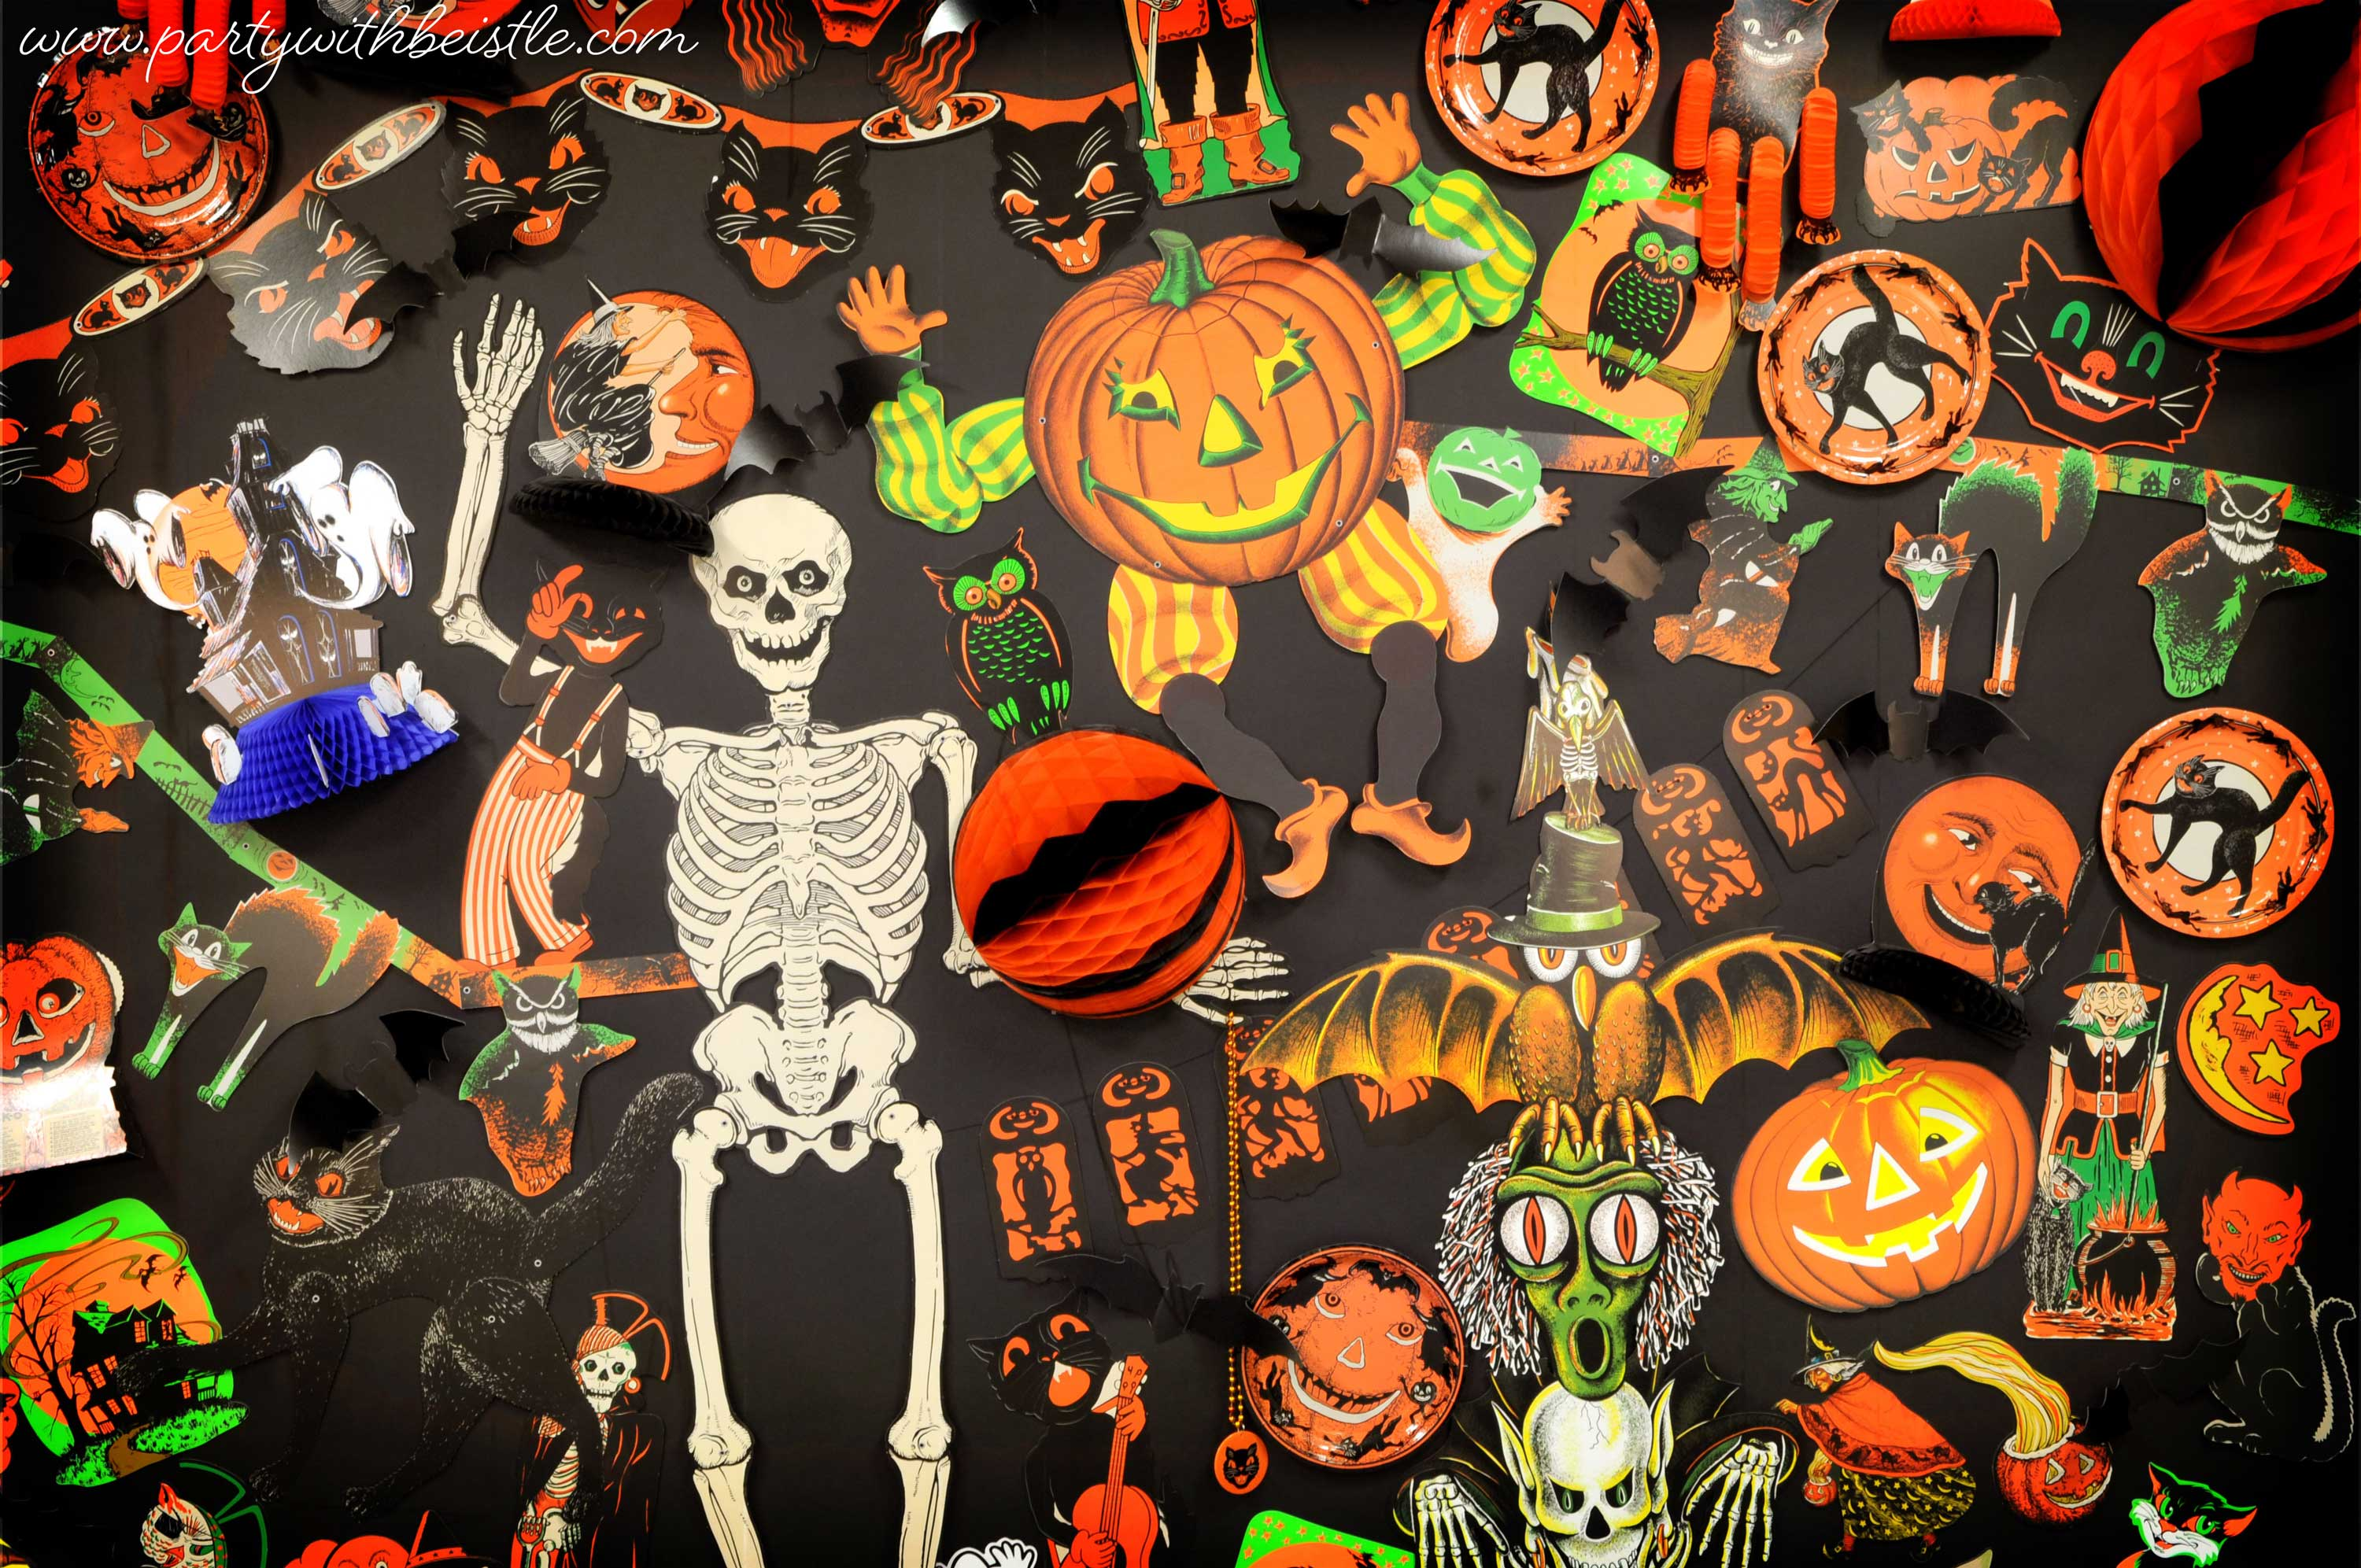 Vintage Halloween Wall of Spooktacular Greatness